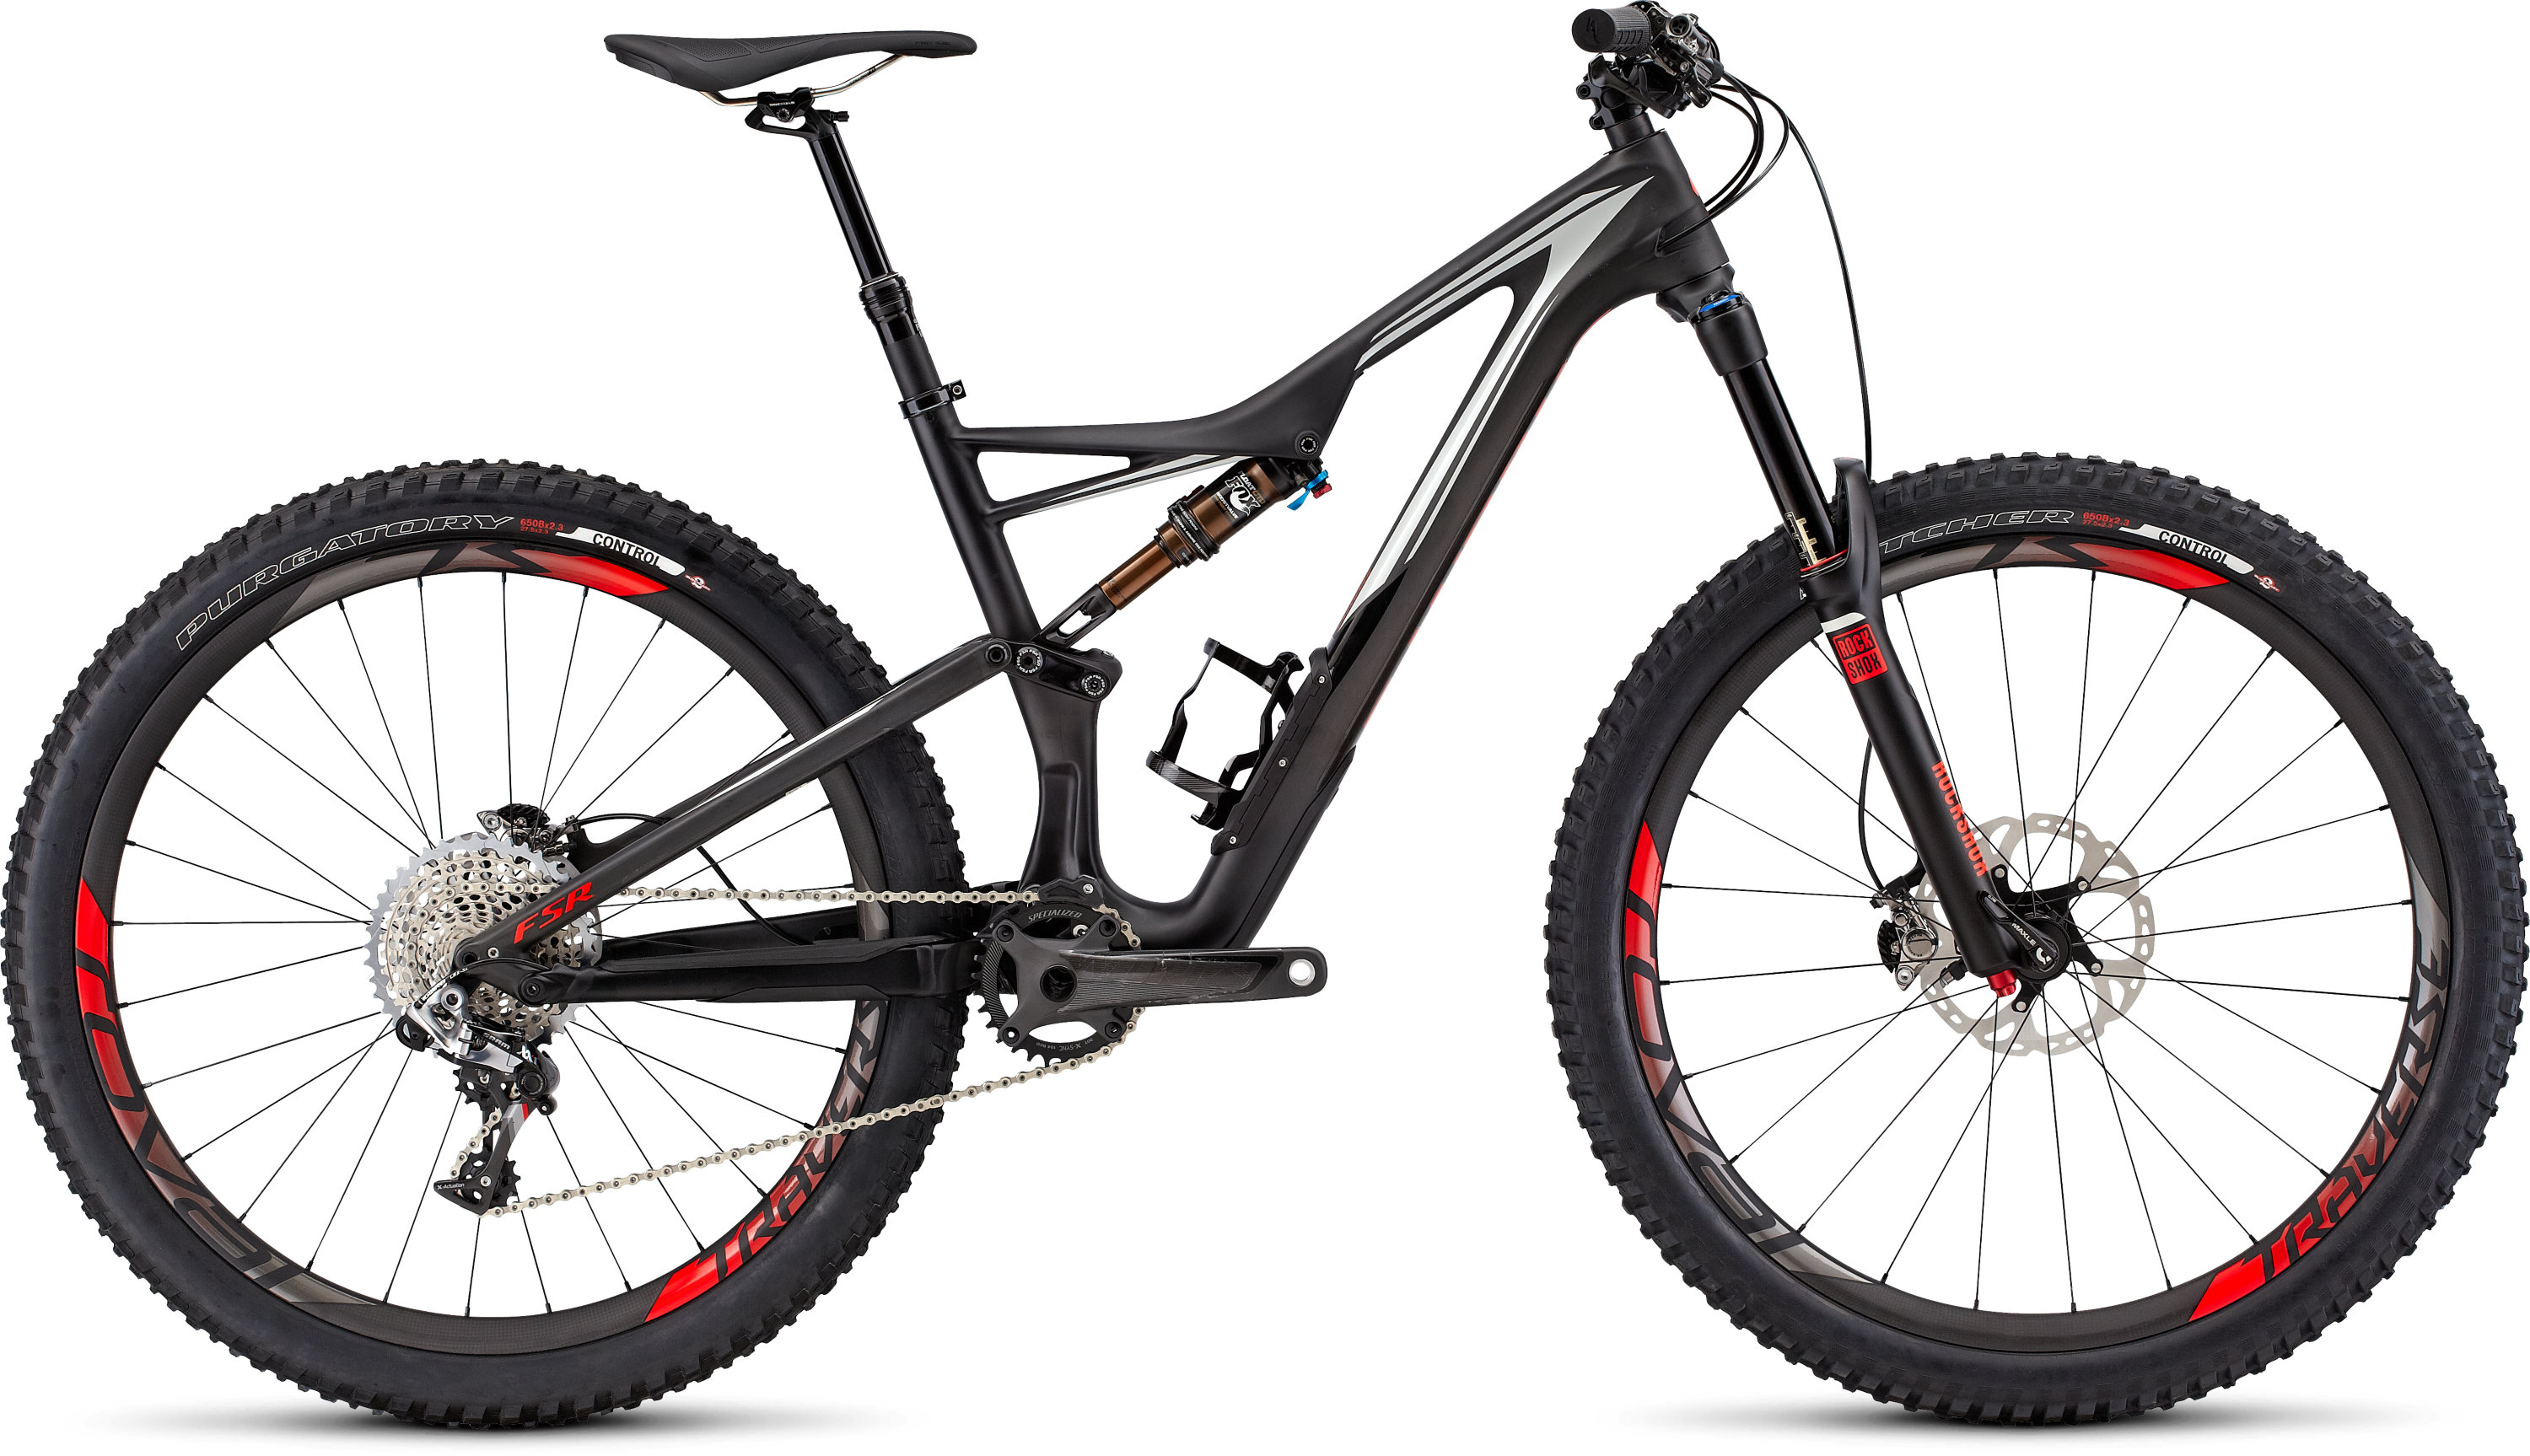 SPECIALIZED SW SJ FSR CARBON 650B CARB/DRTY WHT/RKTRED S - Bikedreams & Dustbikes